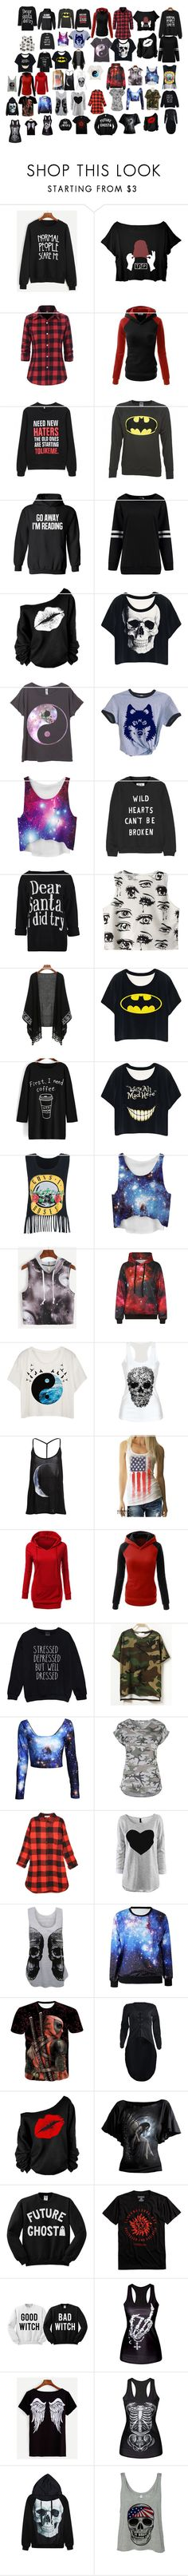 """""""shirts"""" by cassidy-irvin on Polyvore featuring Zoe Karssen, Chicnova Fashion, WithChic, Relaxfeel and WearAll"""